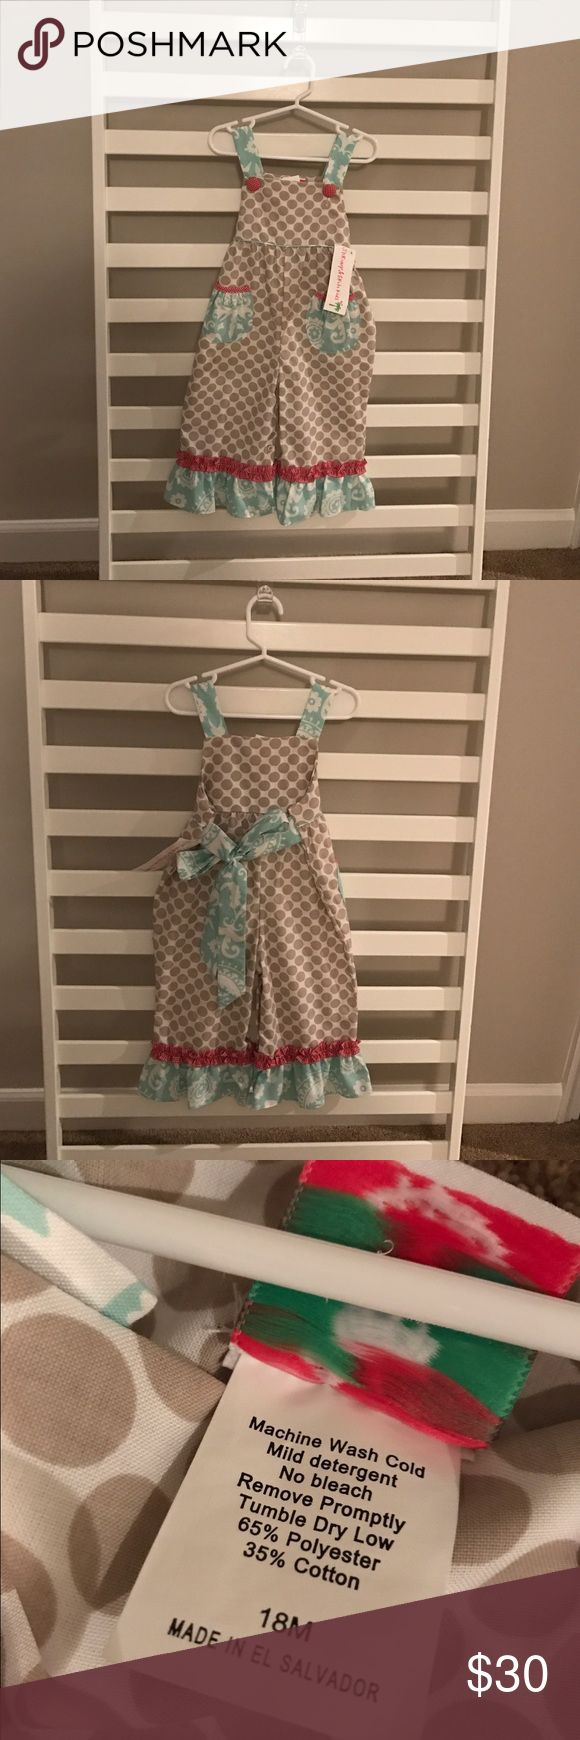 Shrimp and grits kids overall Overall, snaps in bottom, ties in back, ruffles on pants, new with tags Shrimp and Grits Kids One Pieces